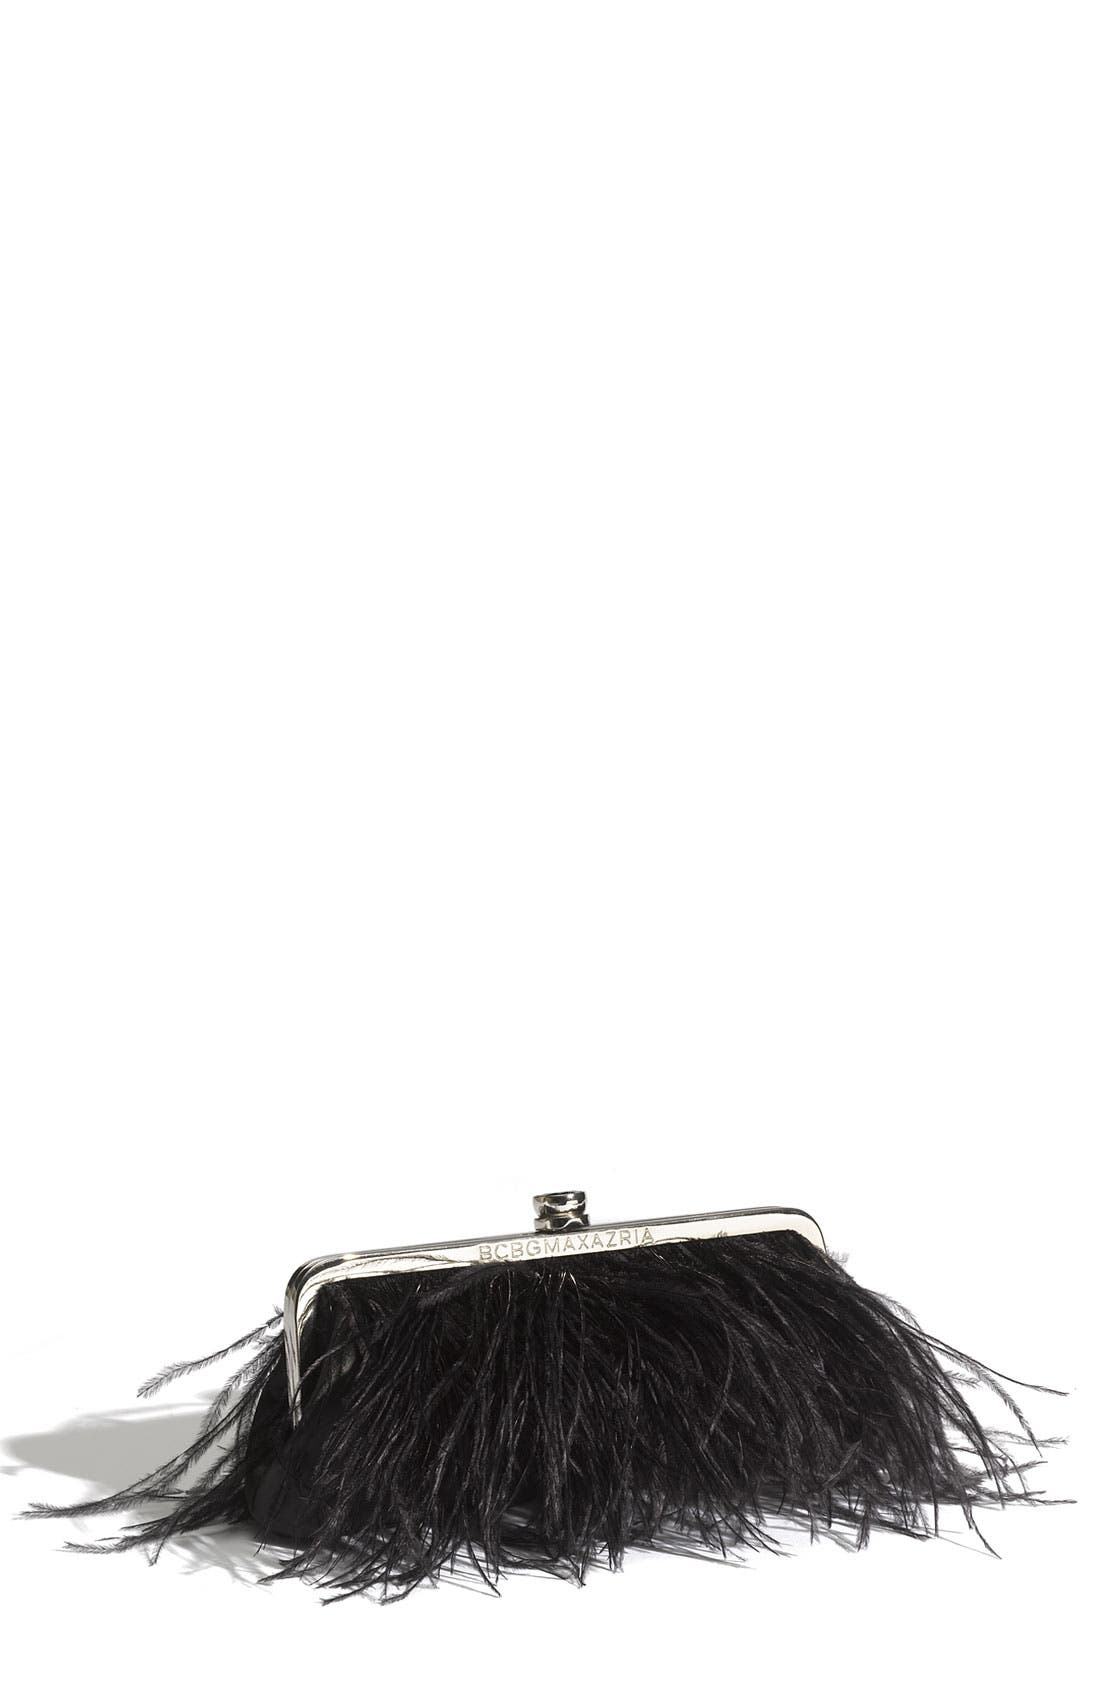 Alternate Image 1 Selected - BCBGMAXAZRIA 'Feather' Clutch